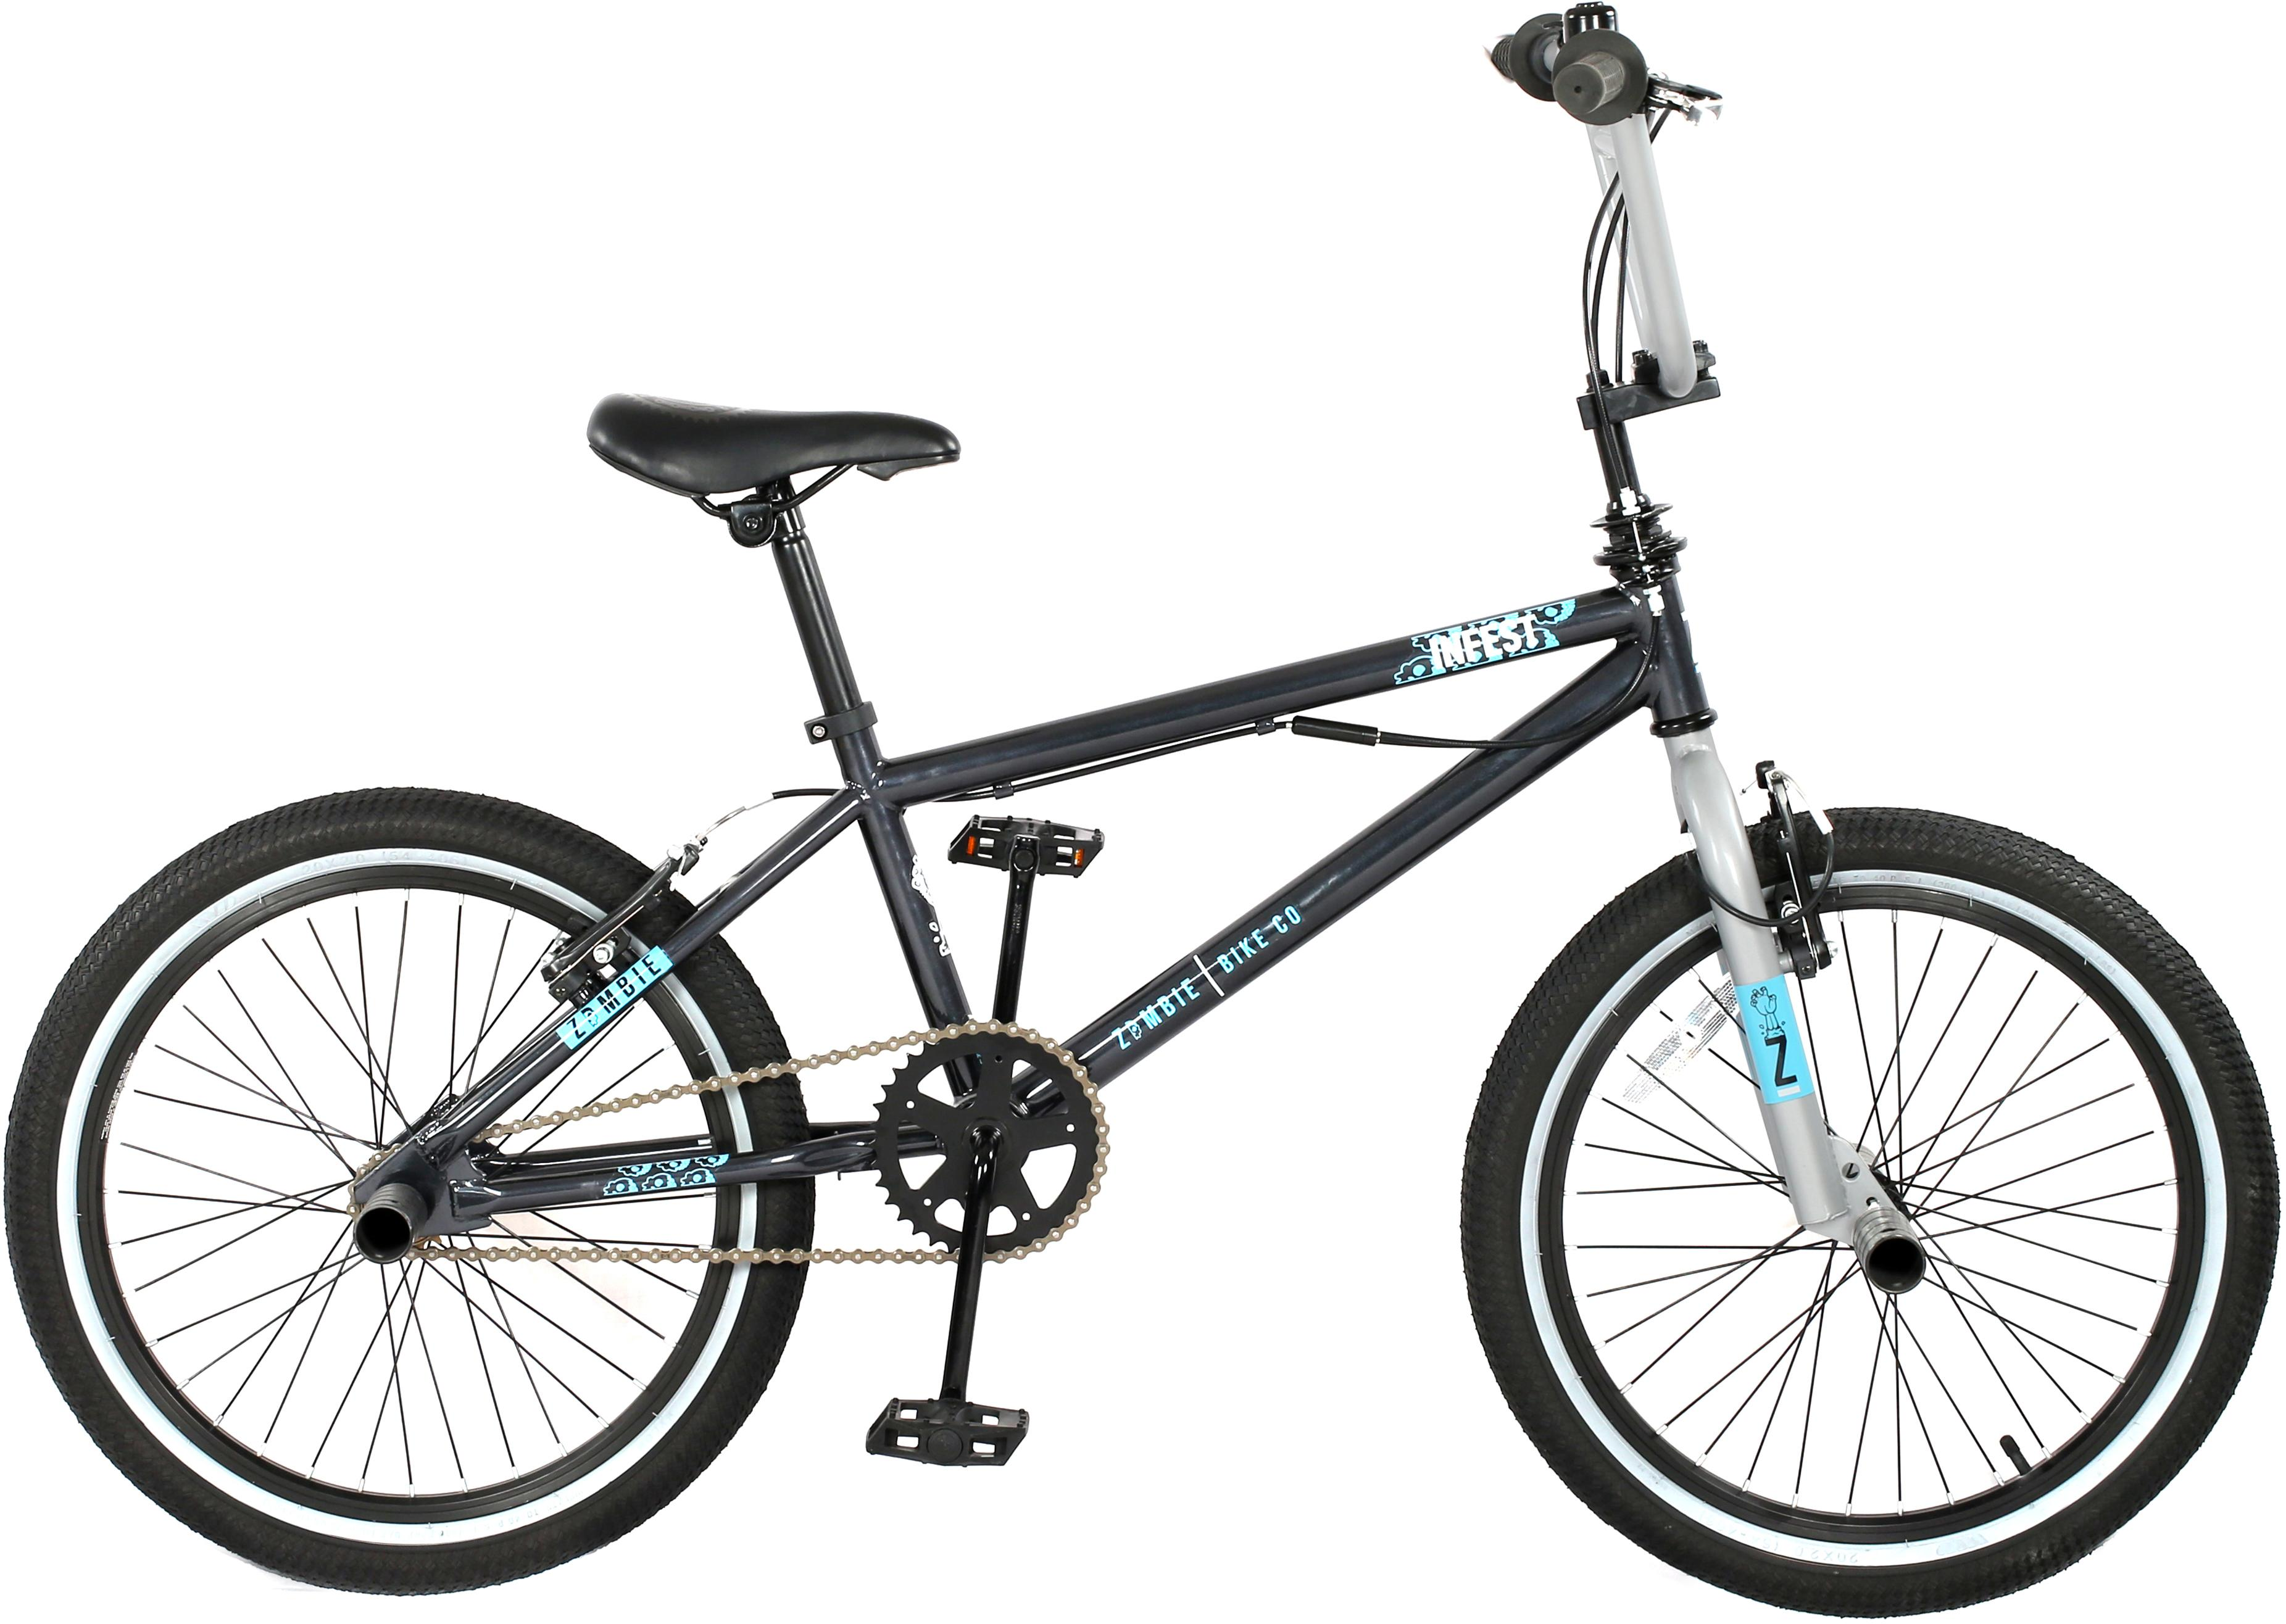 Zombie Infest BMX Bike - 20 inch Wheel